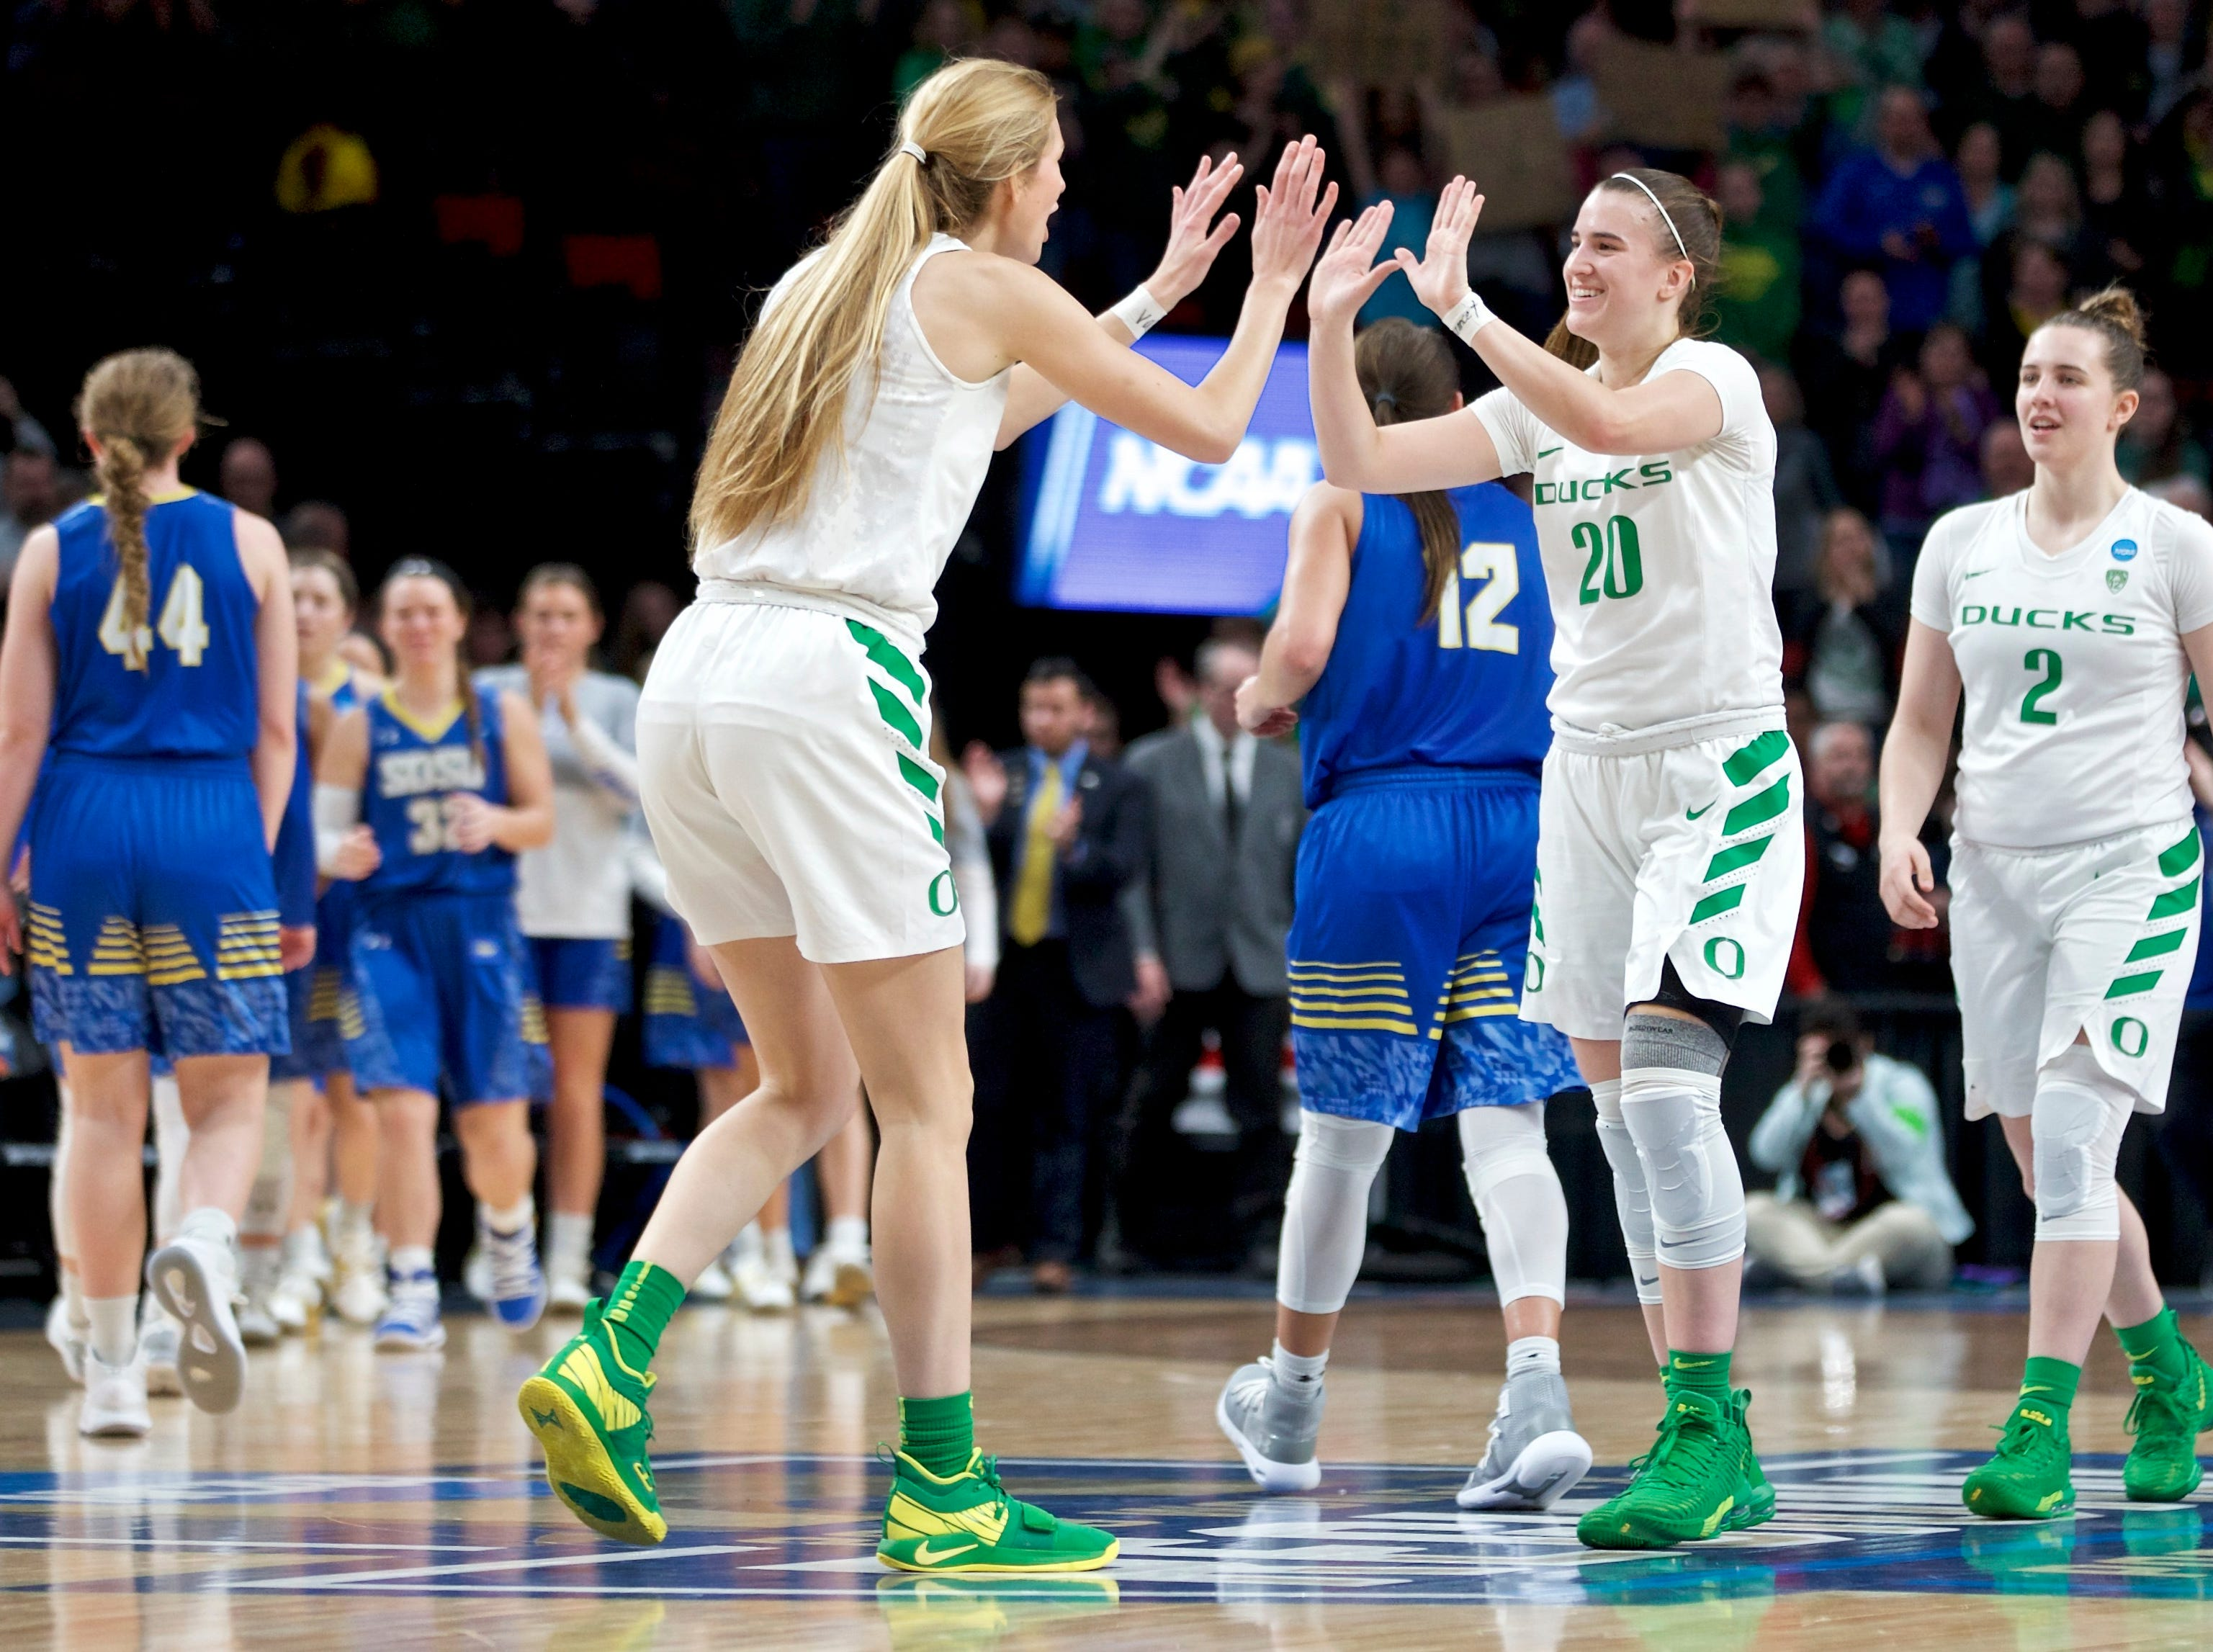 Oregon guard Sabrina Ionescu (20) and forward Lydia Giomi high-five at the end of the team's regional semifinal against South Dakota State in the NCAA women's college basketball tournament Friday, March 29, 2019, in Portland, Ore. Oregon won 63-53. (AP Photo/Craig Mitchelldyer)